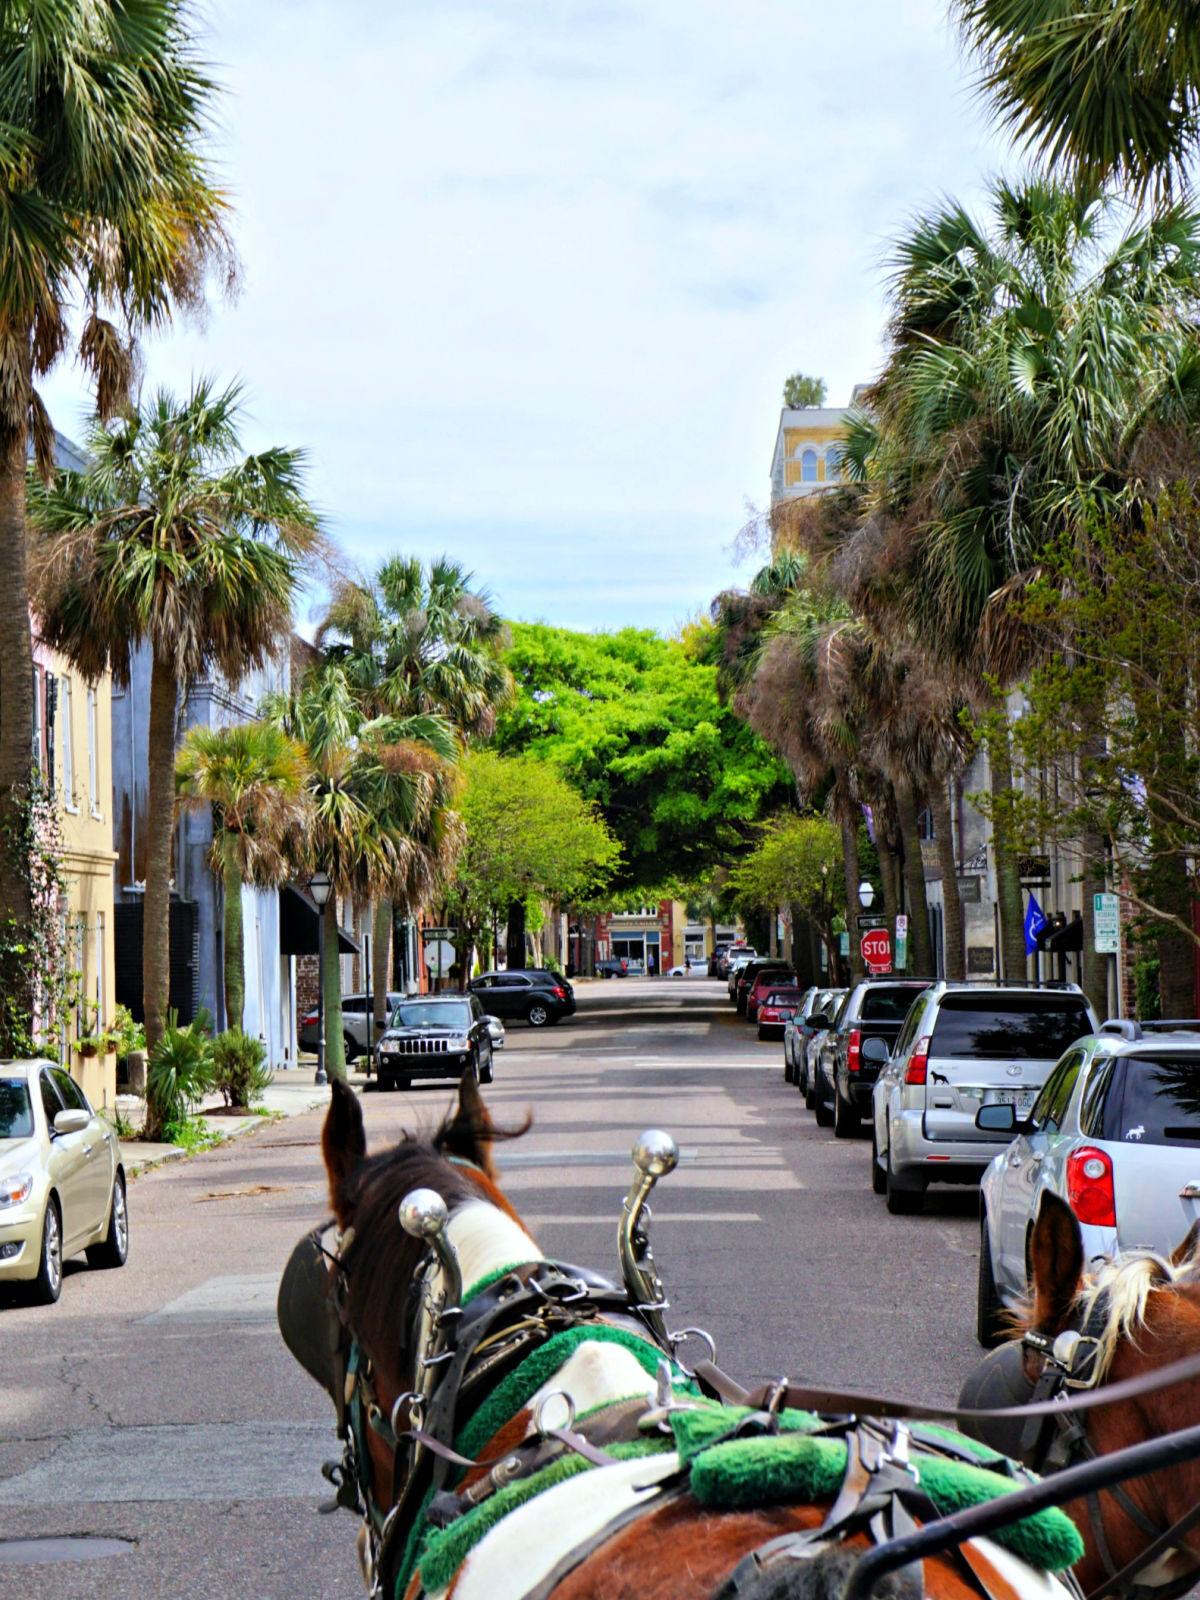 Horse and carriage on a street.